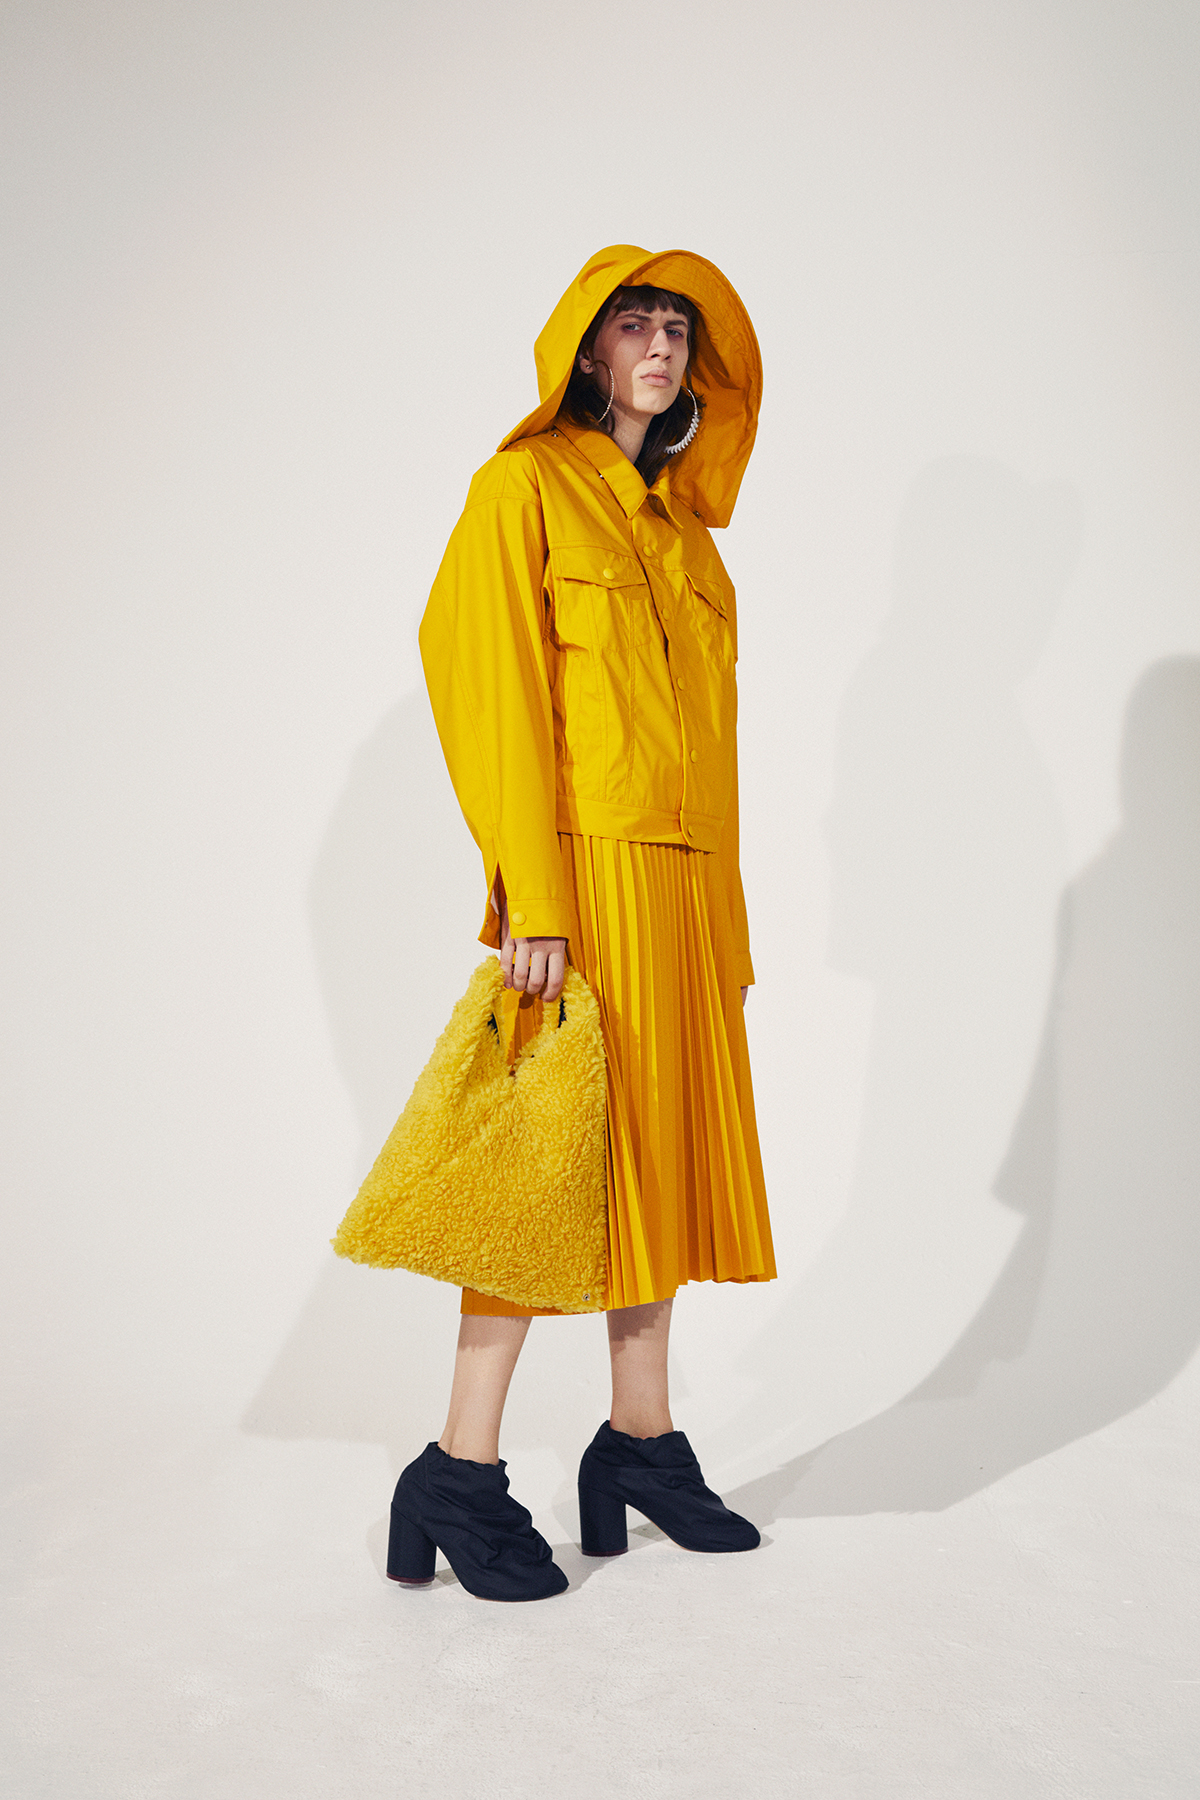 MM6 Maison Margiela Pre-Fall 2019 Collection